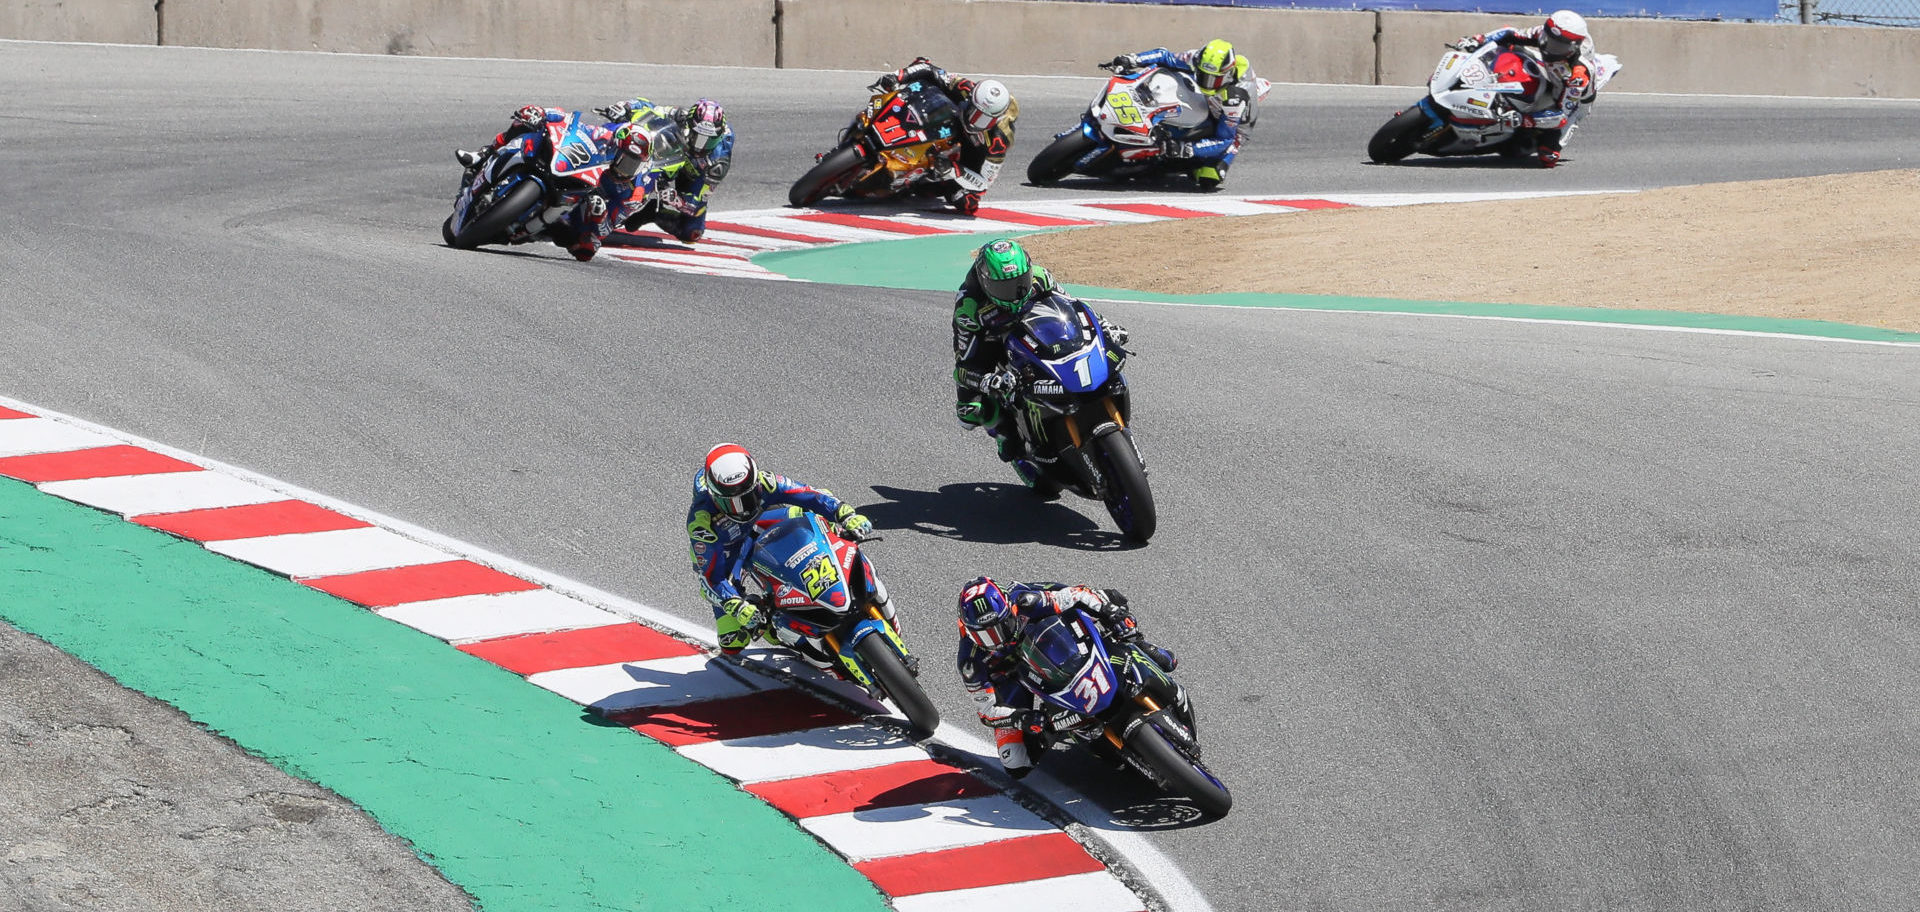 Garrett Gerloff (31) leads Toni Elias (24), Cameron Beaubier (1) and the rest of the MotoAmerica Superbike field at WeatherTech Raceway Laguna Seca in 2019. Photo by Brian J. Nelson.